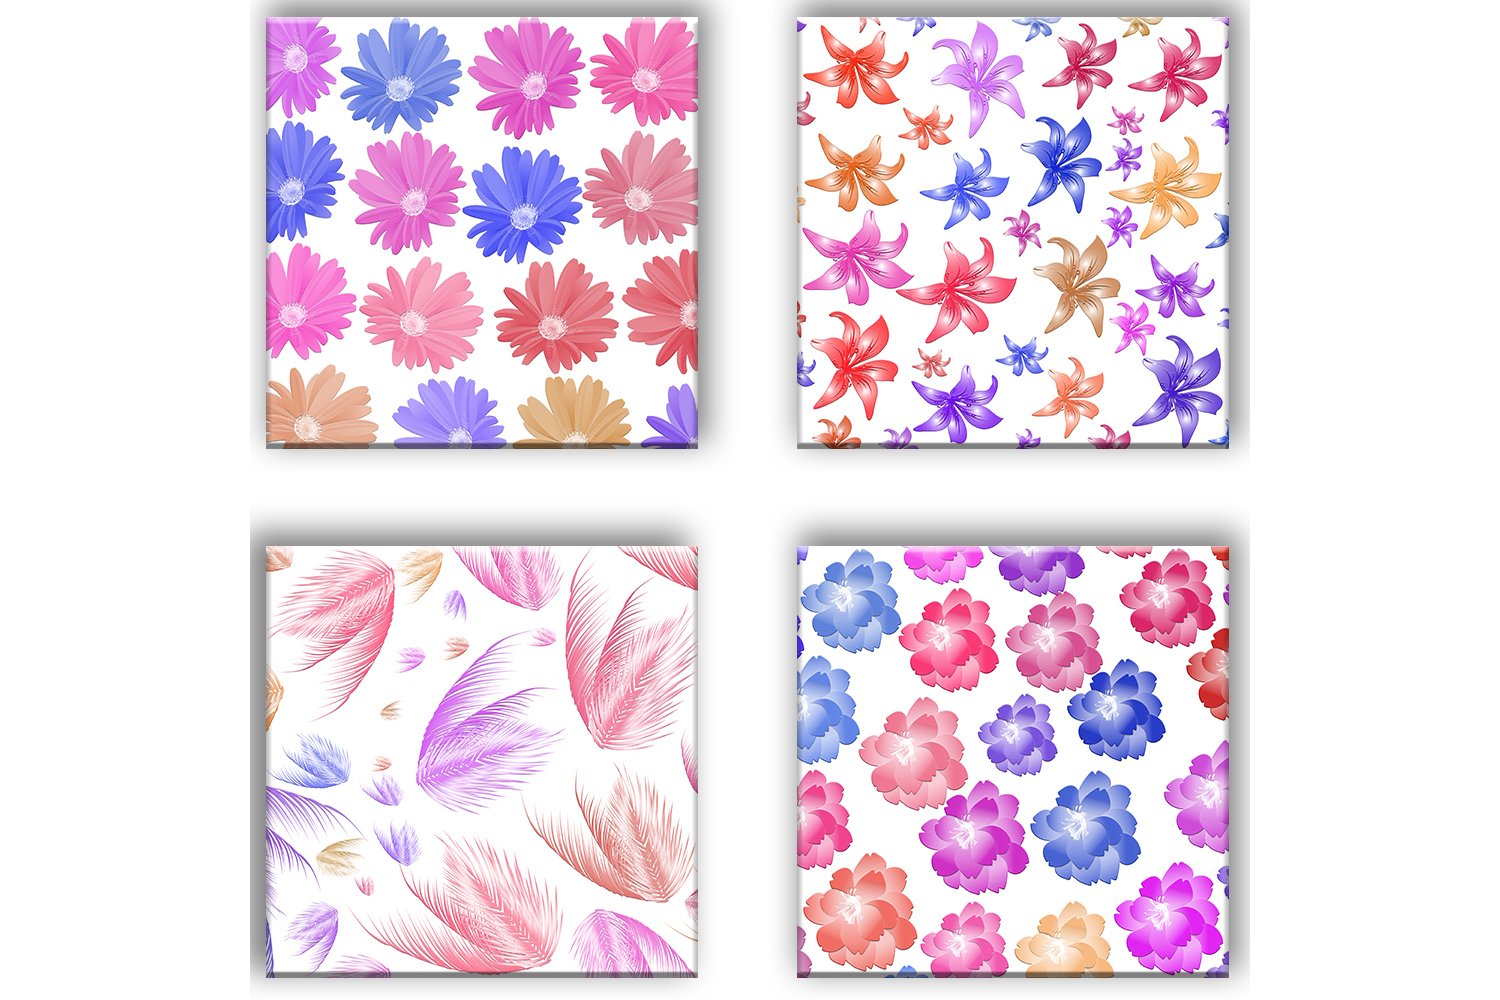 Flowers Patterned, Floral Pattern, Flowers Background example image 3